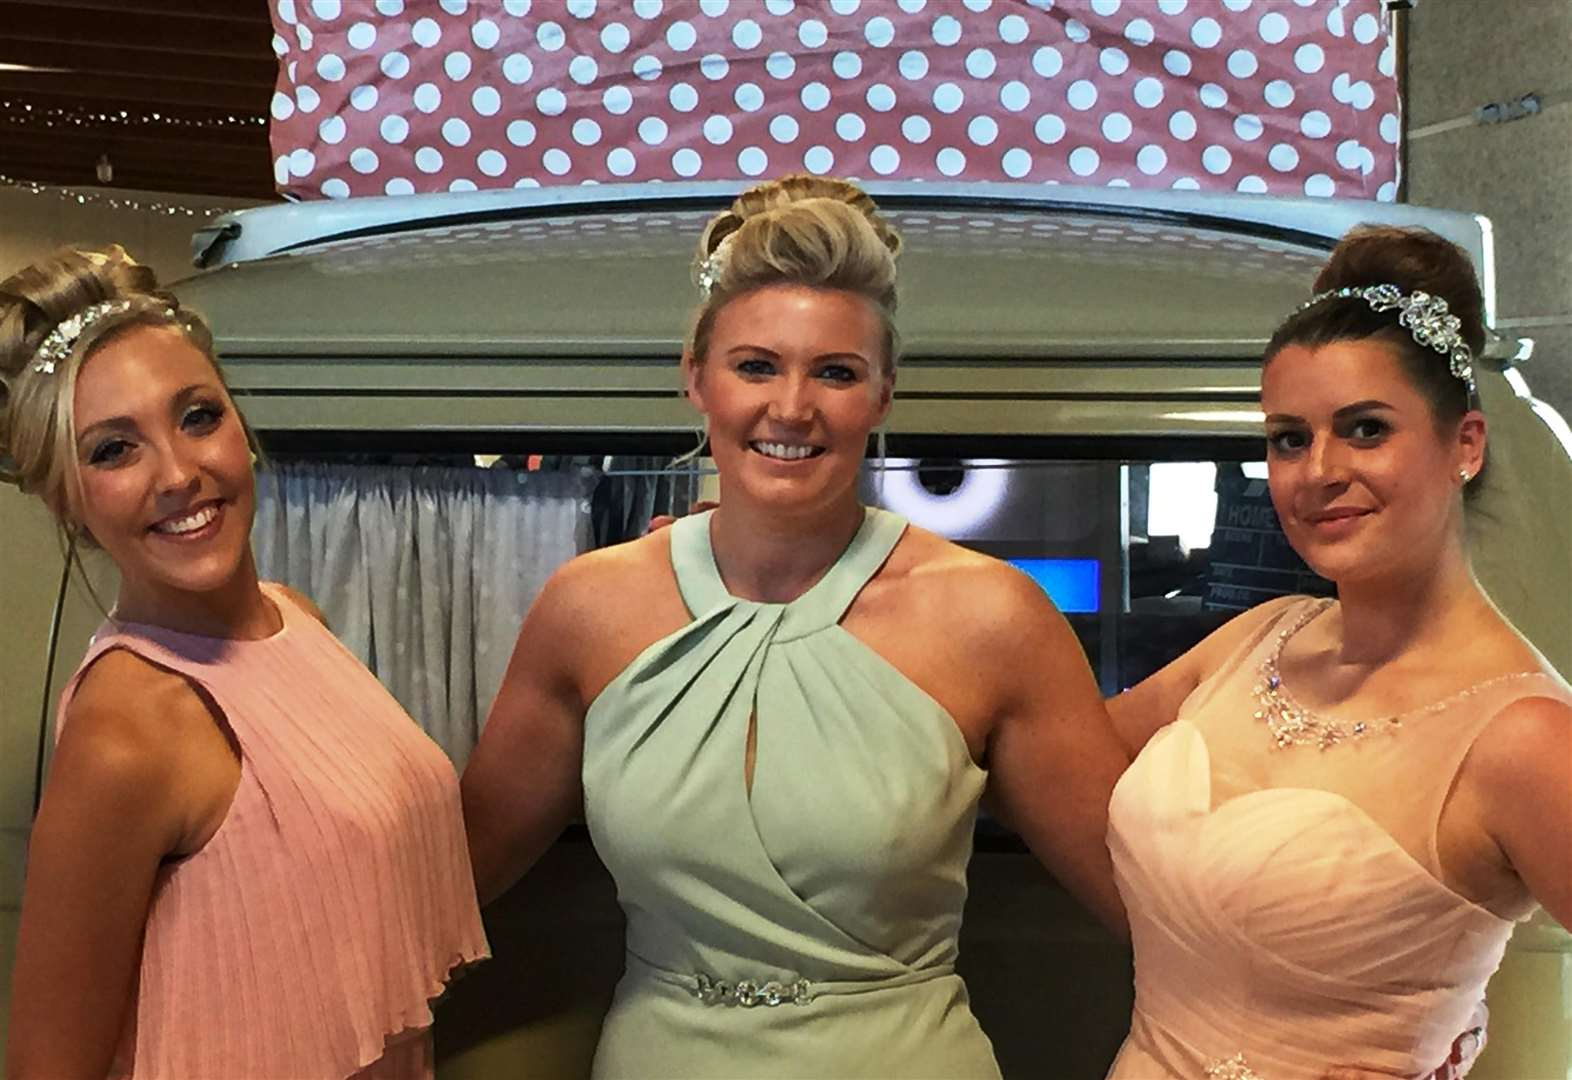 BUSINESS: Bride inspiration at wedding shows